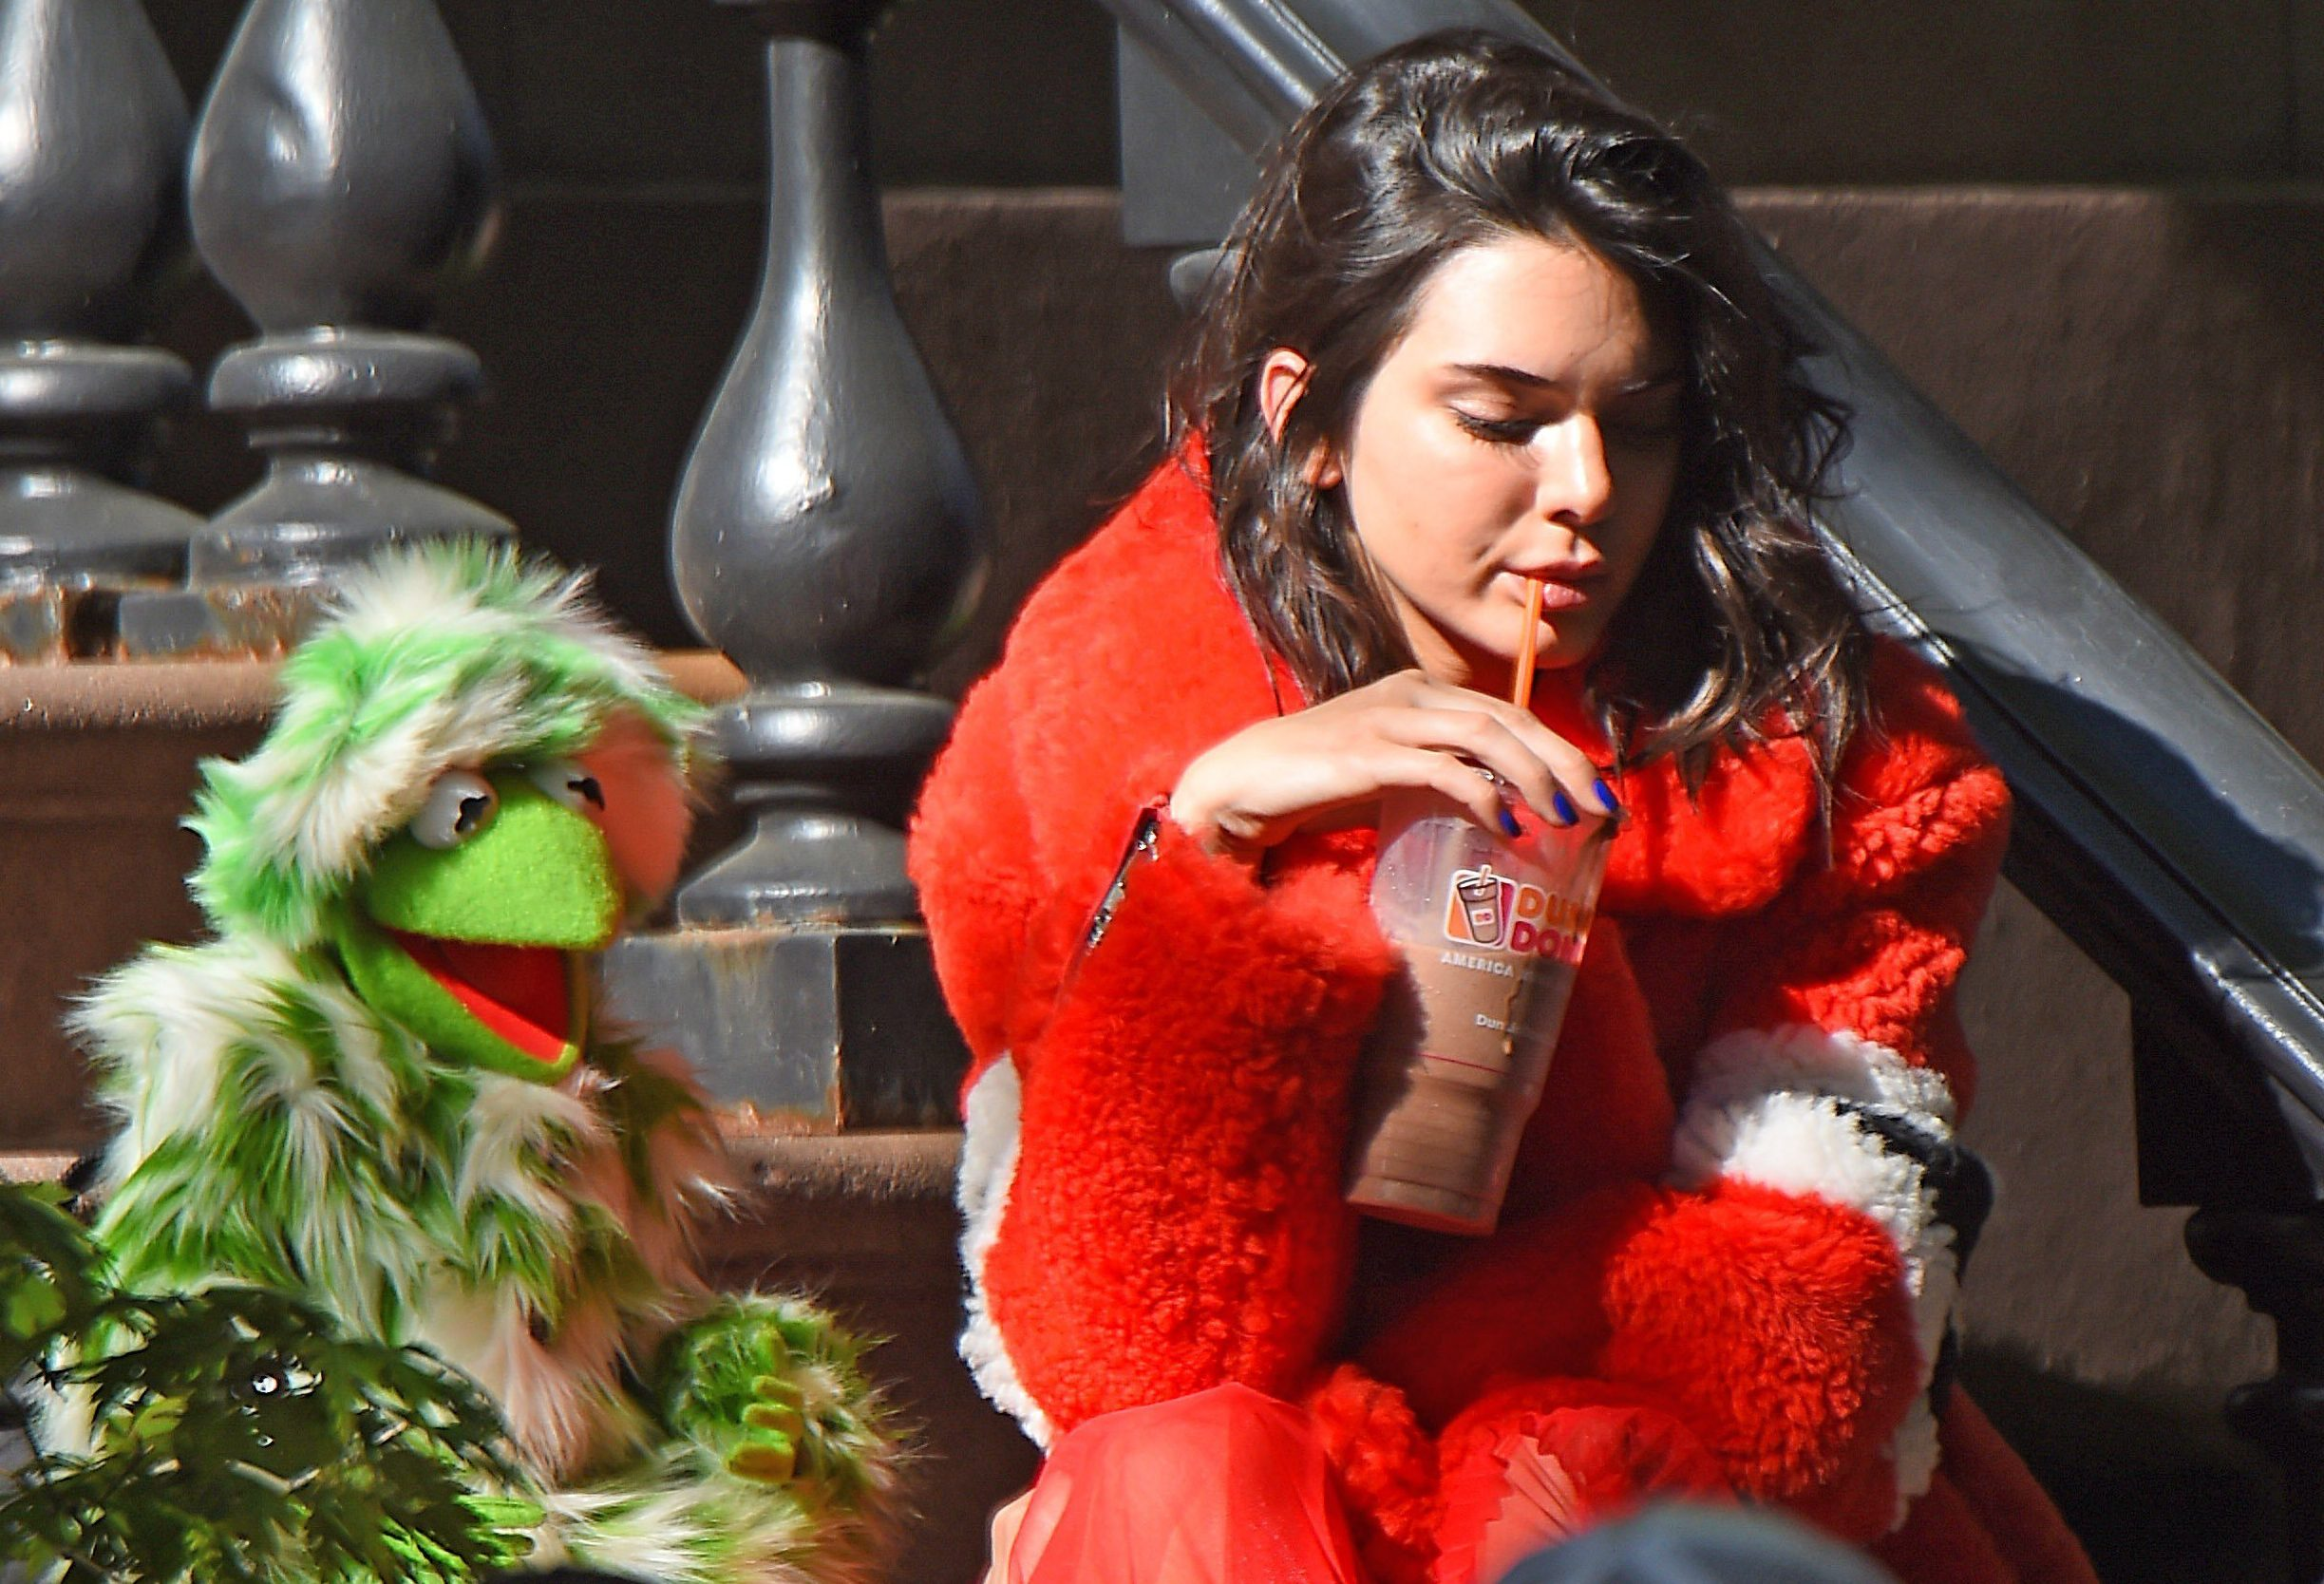 Kendall Jenner teams up with Kermit the Frog following the Met Gala 2017 for special shoot